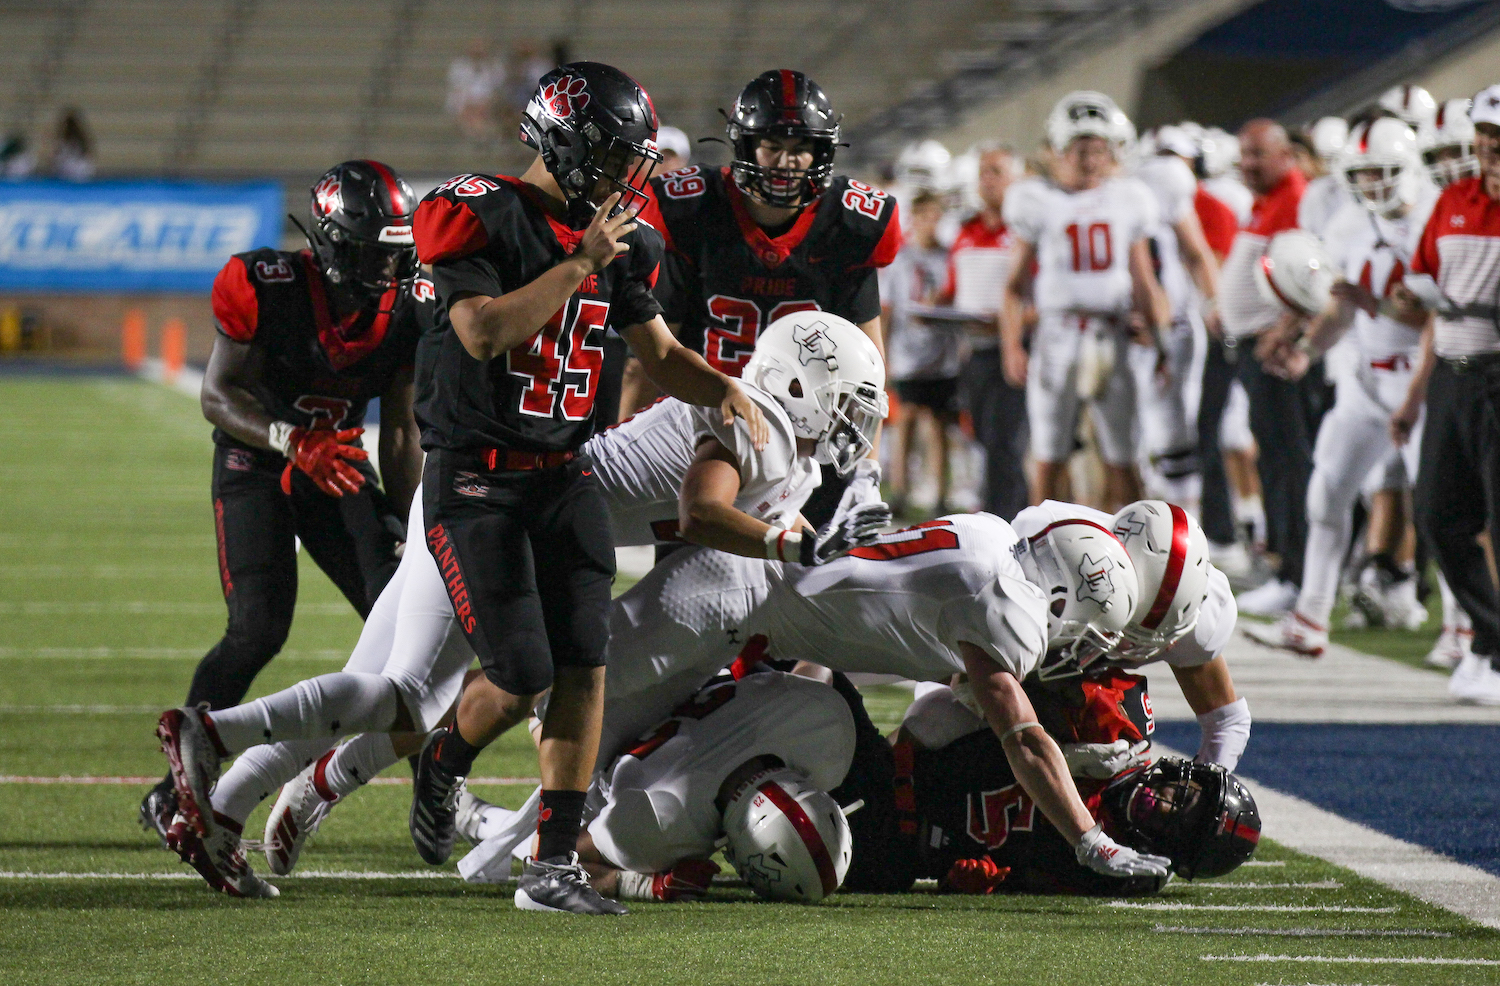 Colleyville+Heritage+offensive+lineman+%09Husam+Elshiek+is+tackled+by+four+Lovejoy+football+players+at+the+sideline.